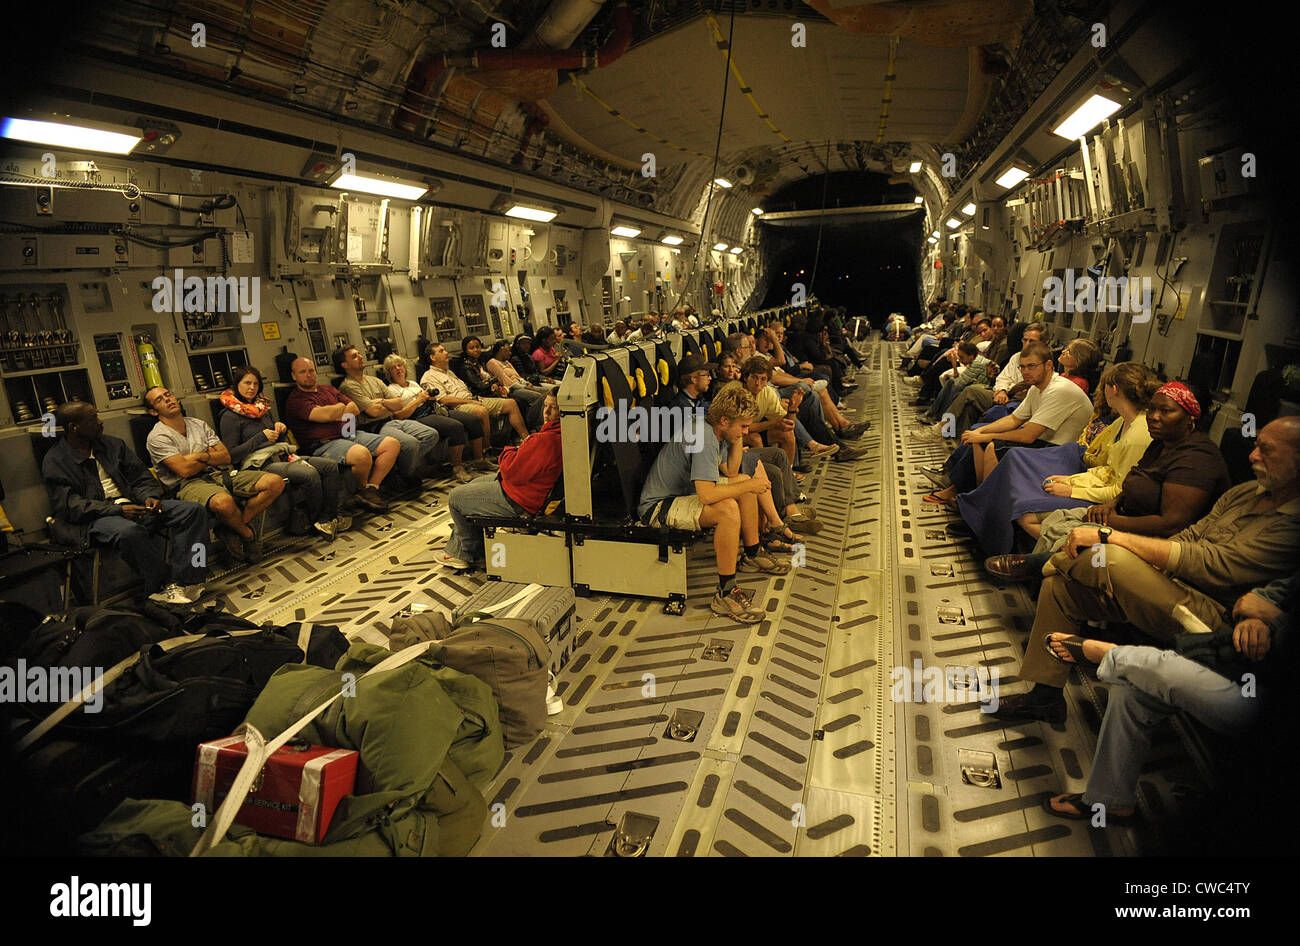 US citizens evacuated from earthquake stricken Haiti in a Air Force C-17 transport. Jan. 15 2010. (BSLOC_2011_12 - Stock Image